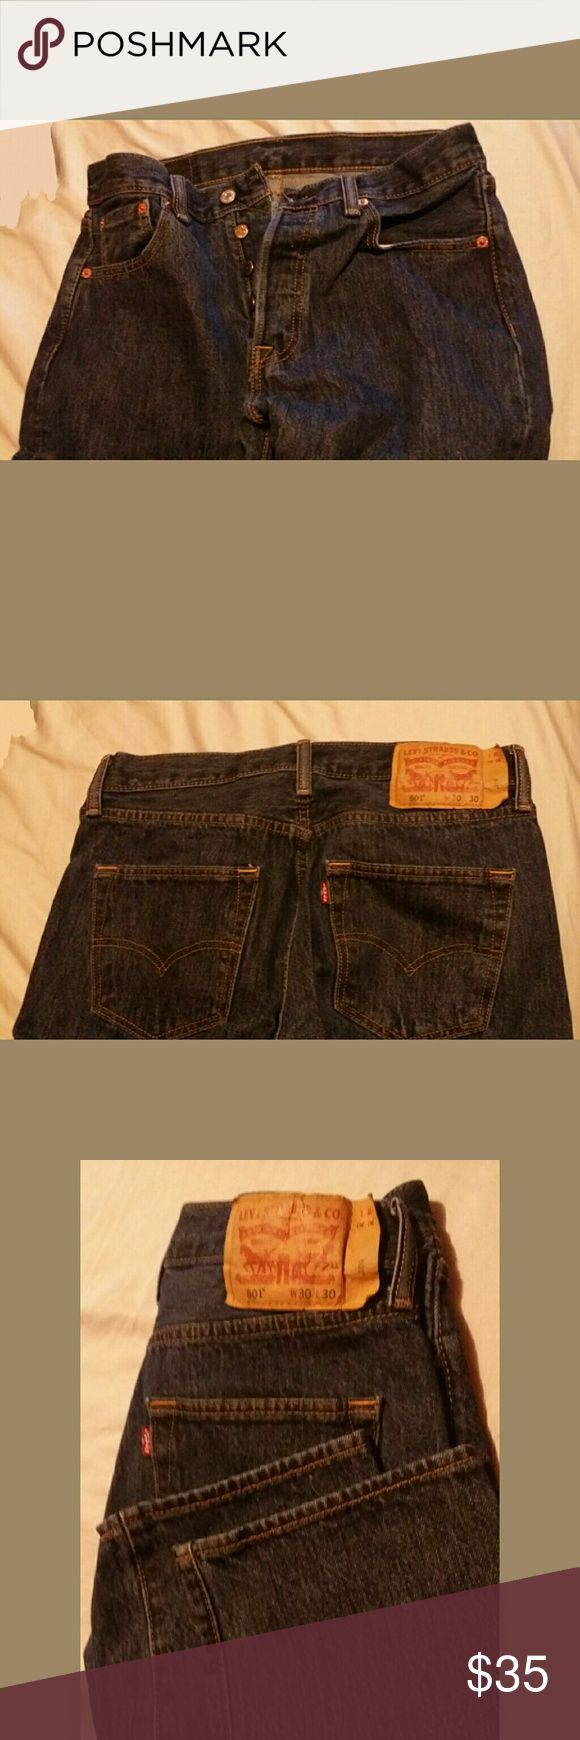 LEVI'S 501 MEN'S BUTTON FLY JEANS ORIGINAL FIT STRAIGHT LEG JEANS BUTTON FLY BLUE JEANS/NEVER WORN/NEW NO TAGS/JEANS WERE WASHED DUE TO ANTICIPATED WEAR BUT NEVER WORN/SIZE W 30 L 30 Levi's Jeans Straight